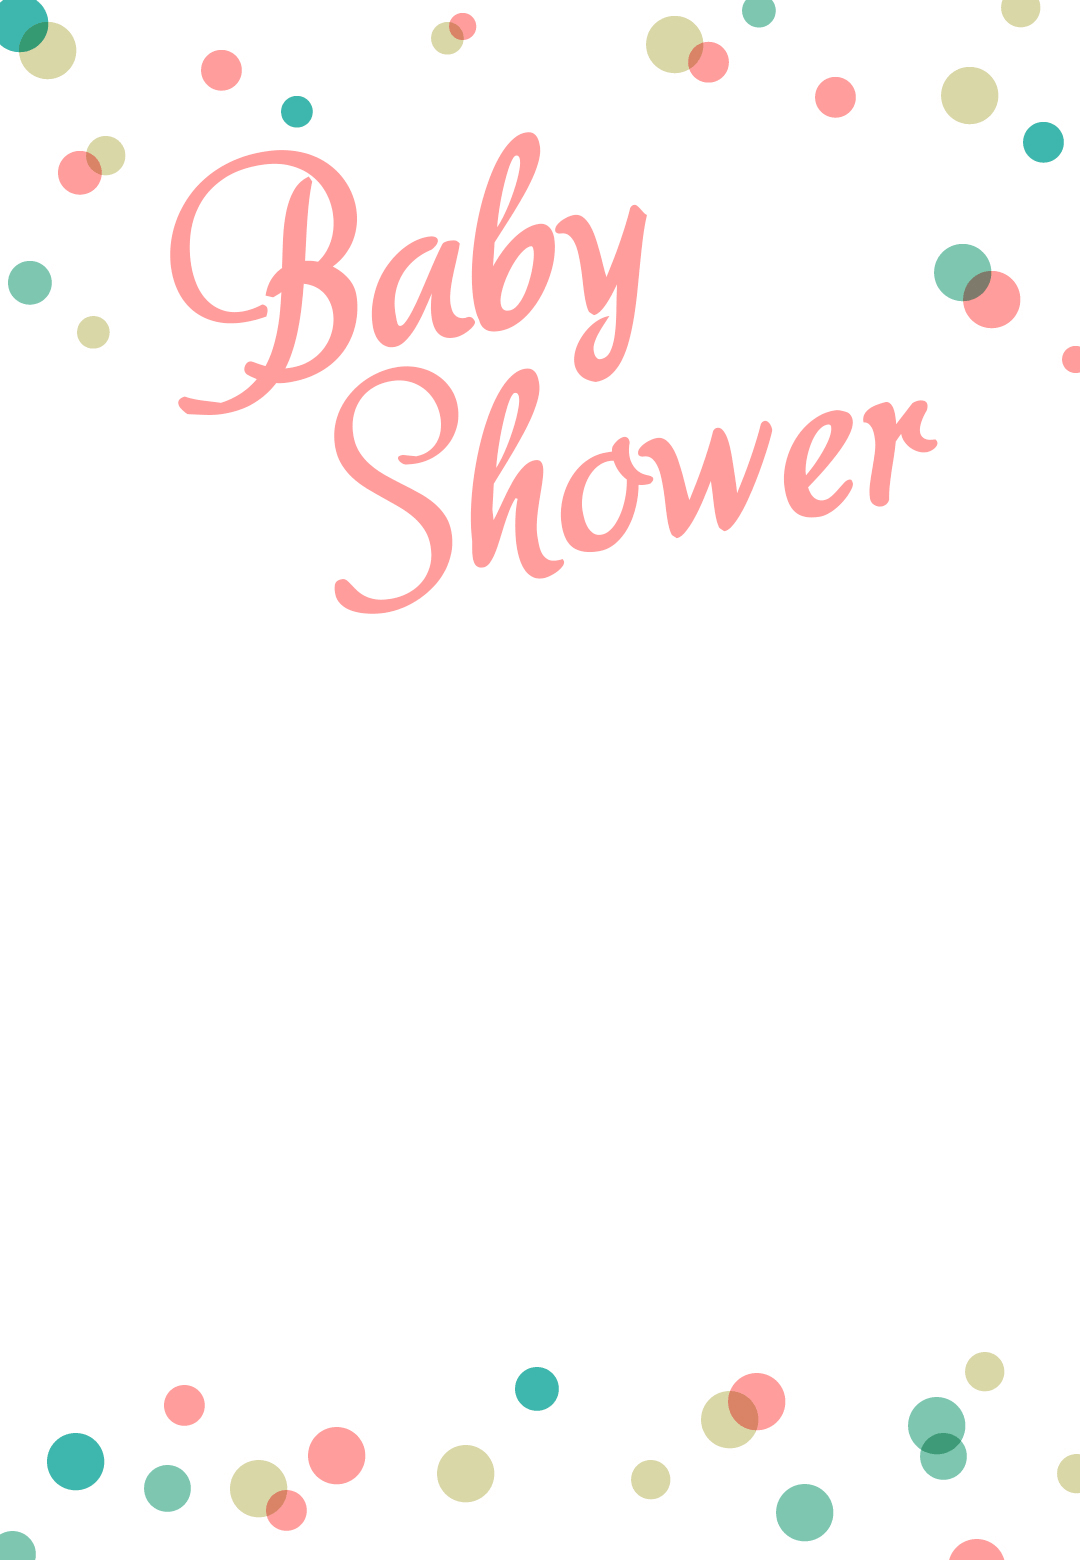 Full Size of Baby Shower:sturdy Baby Shower Invitation Template Image Concepts Baby Shower Invitation Template Baby Shower Bingo Baby Shower Accessories Arreglos Para Baby Shower Baby Shower Clip Art Dancing Dots Borders Free Printable Baby Shower Invitation